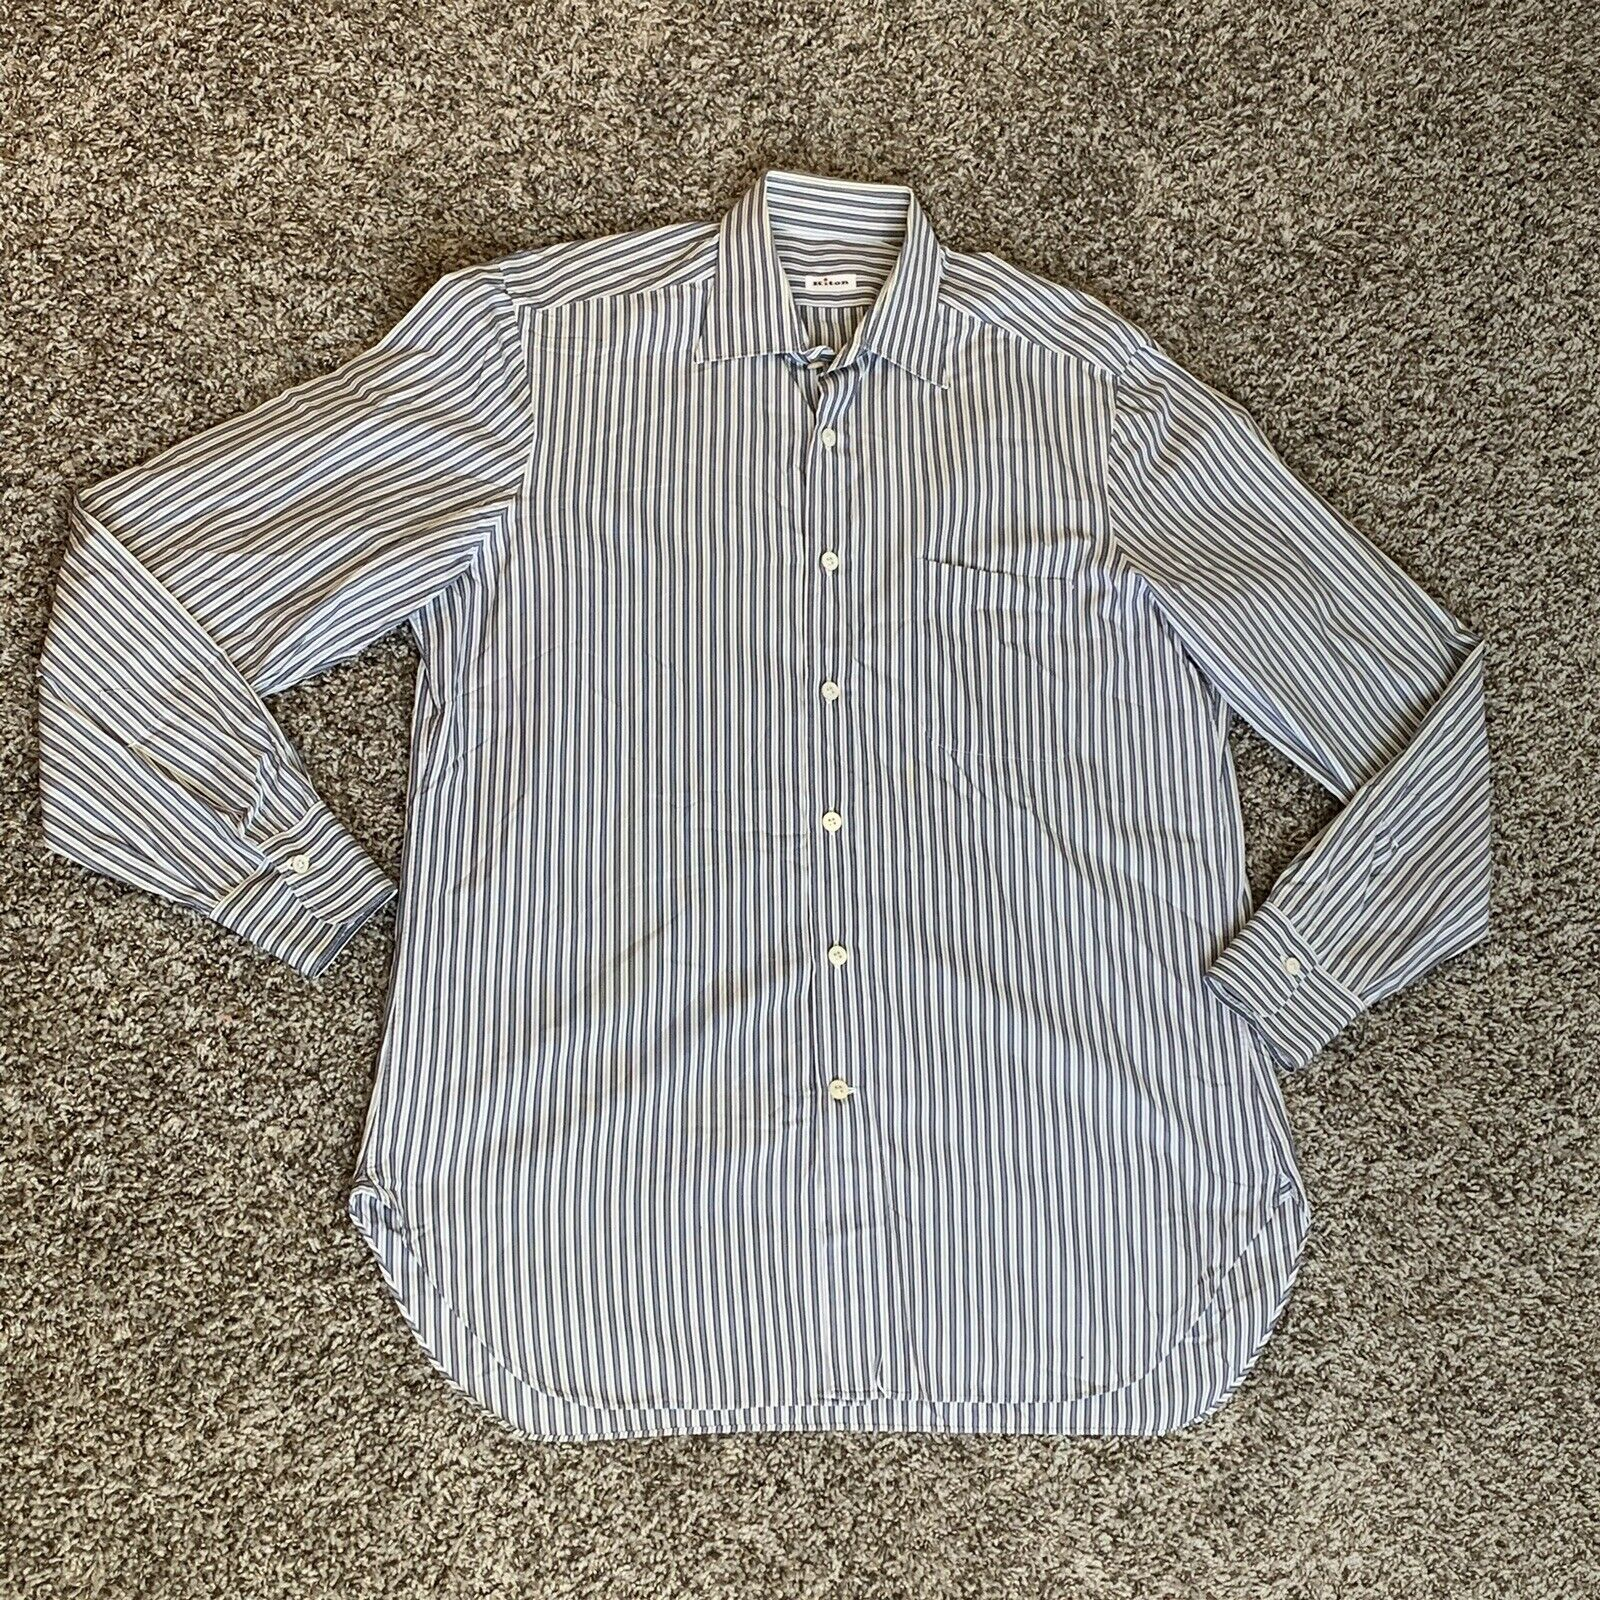 Mens Kiton Button Up Long Sleeve Shirt Navy bluee white Sz 16 1 2-42